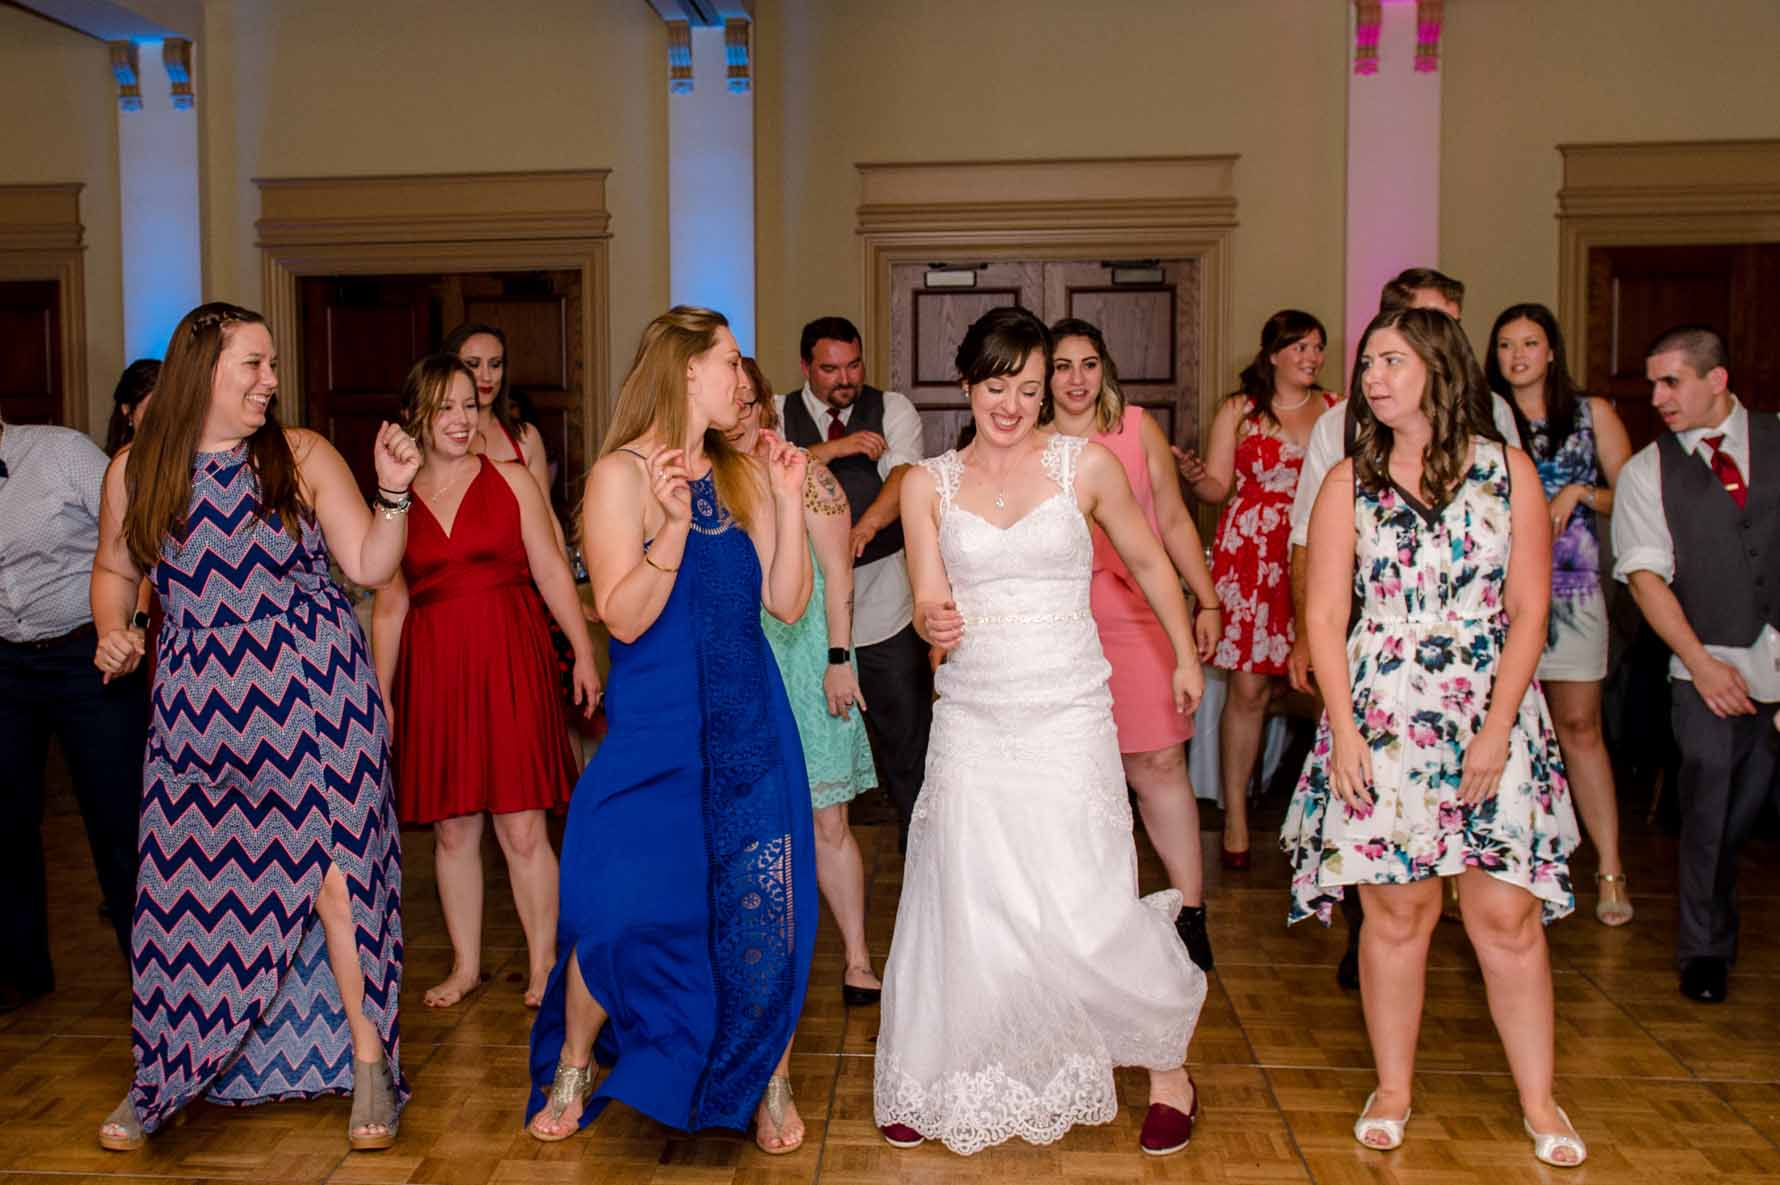 Wedding Reception Package $895 - - 4 Hours of dinner/dance music- Premium sound system with Subwoofer- Wireless microphone for toasts- Wedding planning workbook- Detailed planning meeting- 1 Custom Song Edit